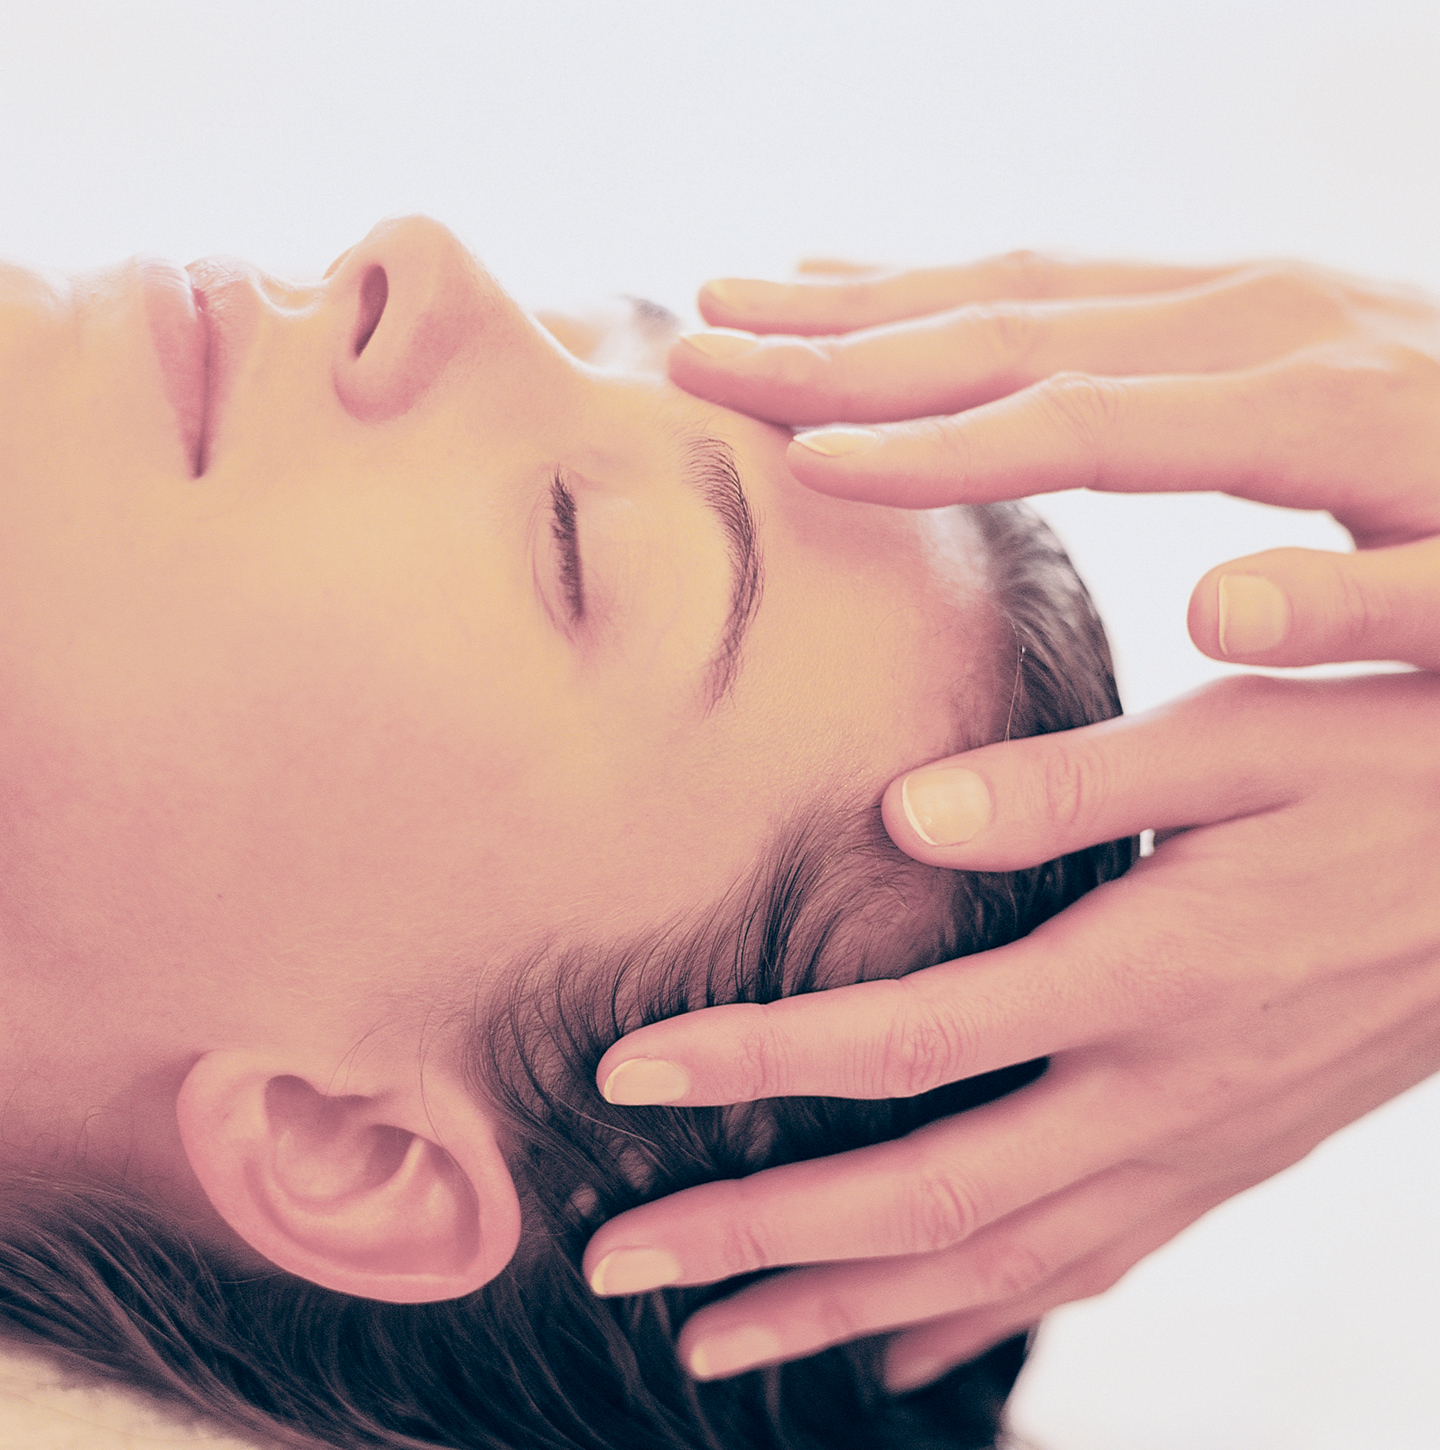 massage and haircut portland spa gt gift certificate 4837 | 8be0d93d 3477 4837 a358 ded4d50d3054